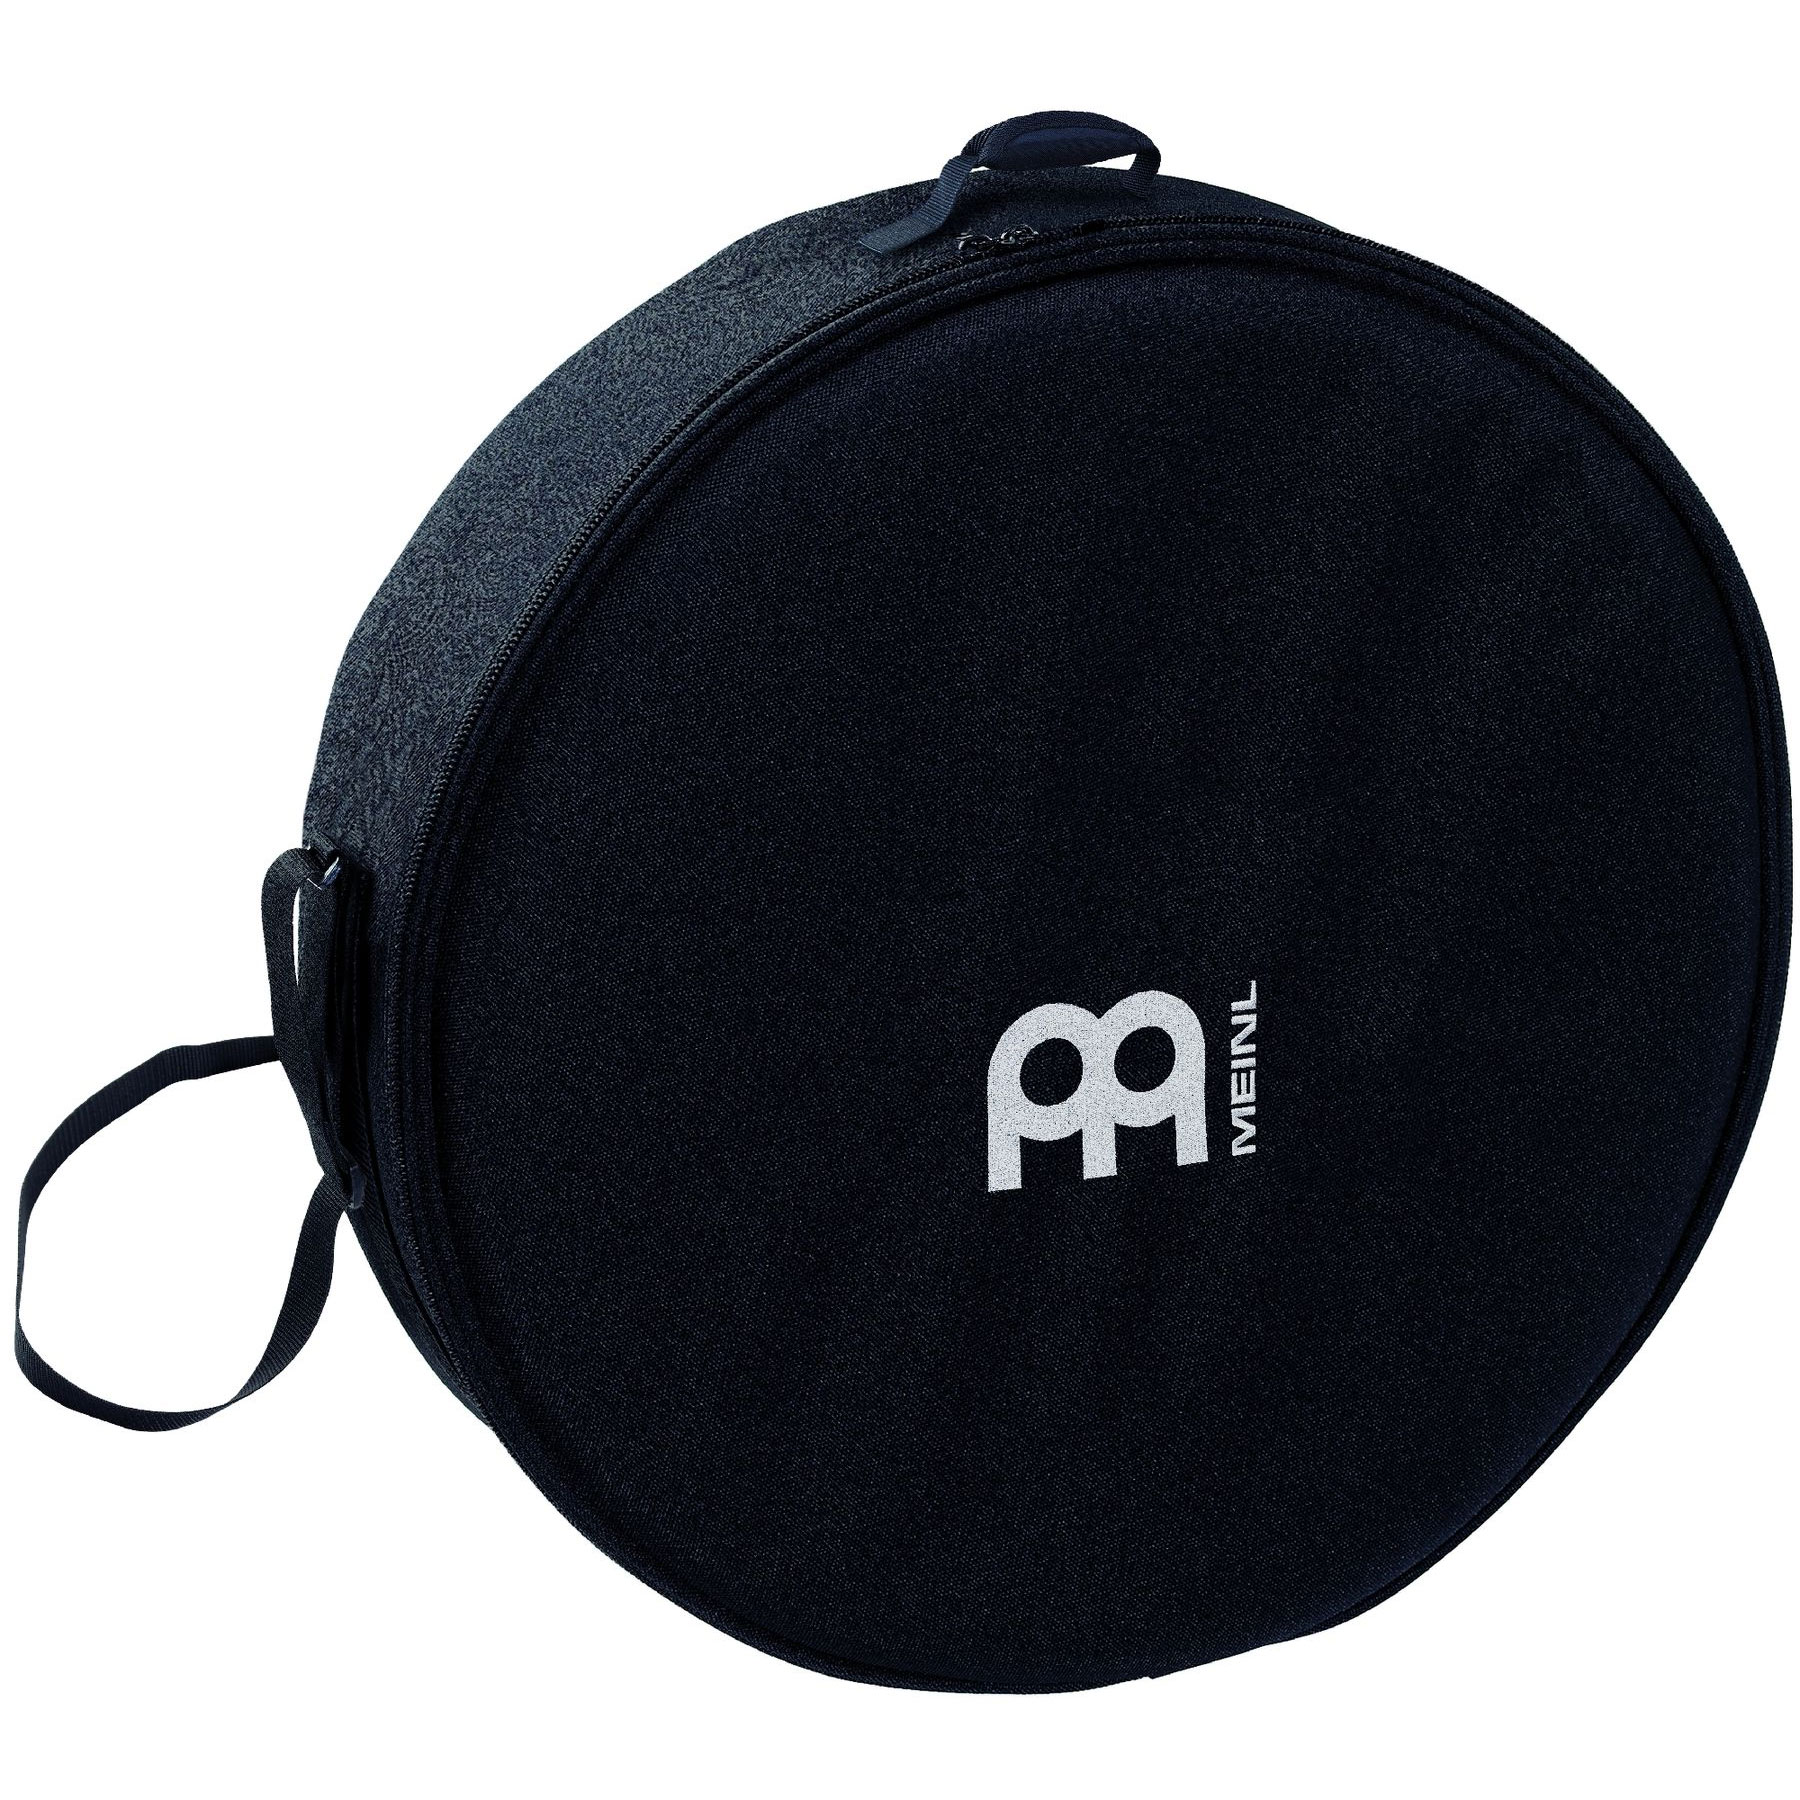 "Meinl 16"" (Diameter) Professional Frame Drum Bag"